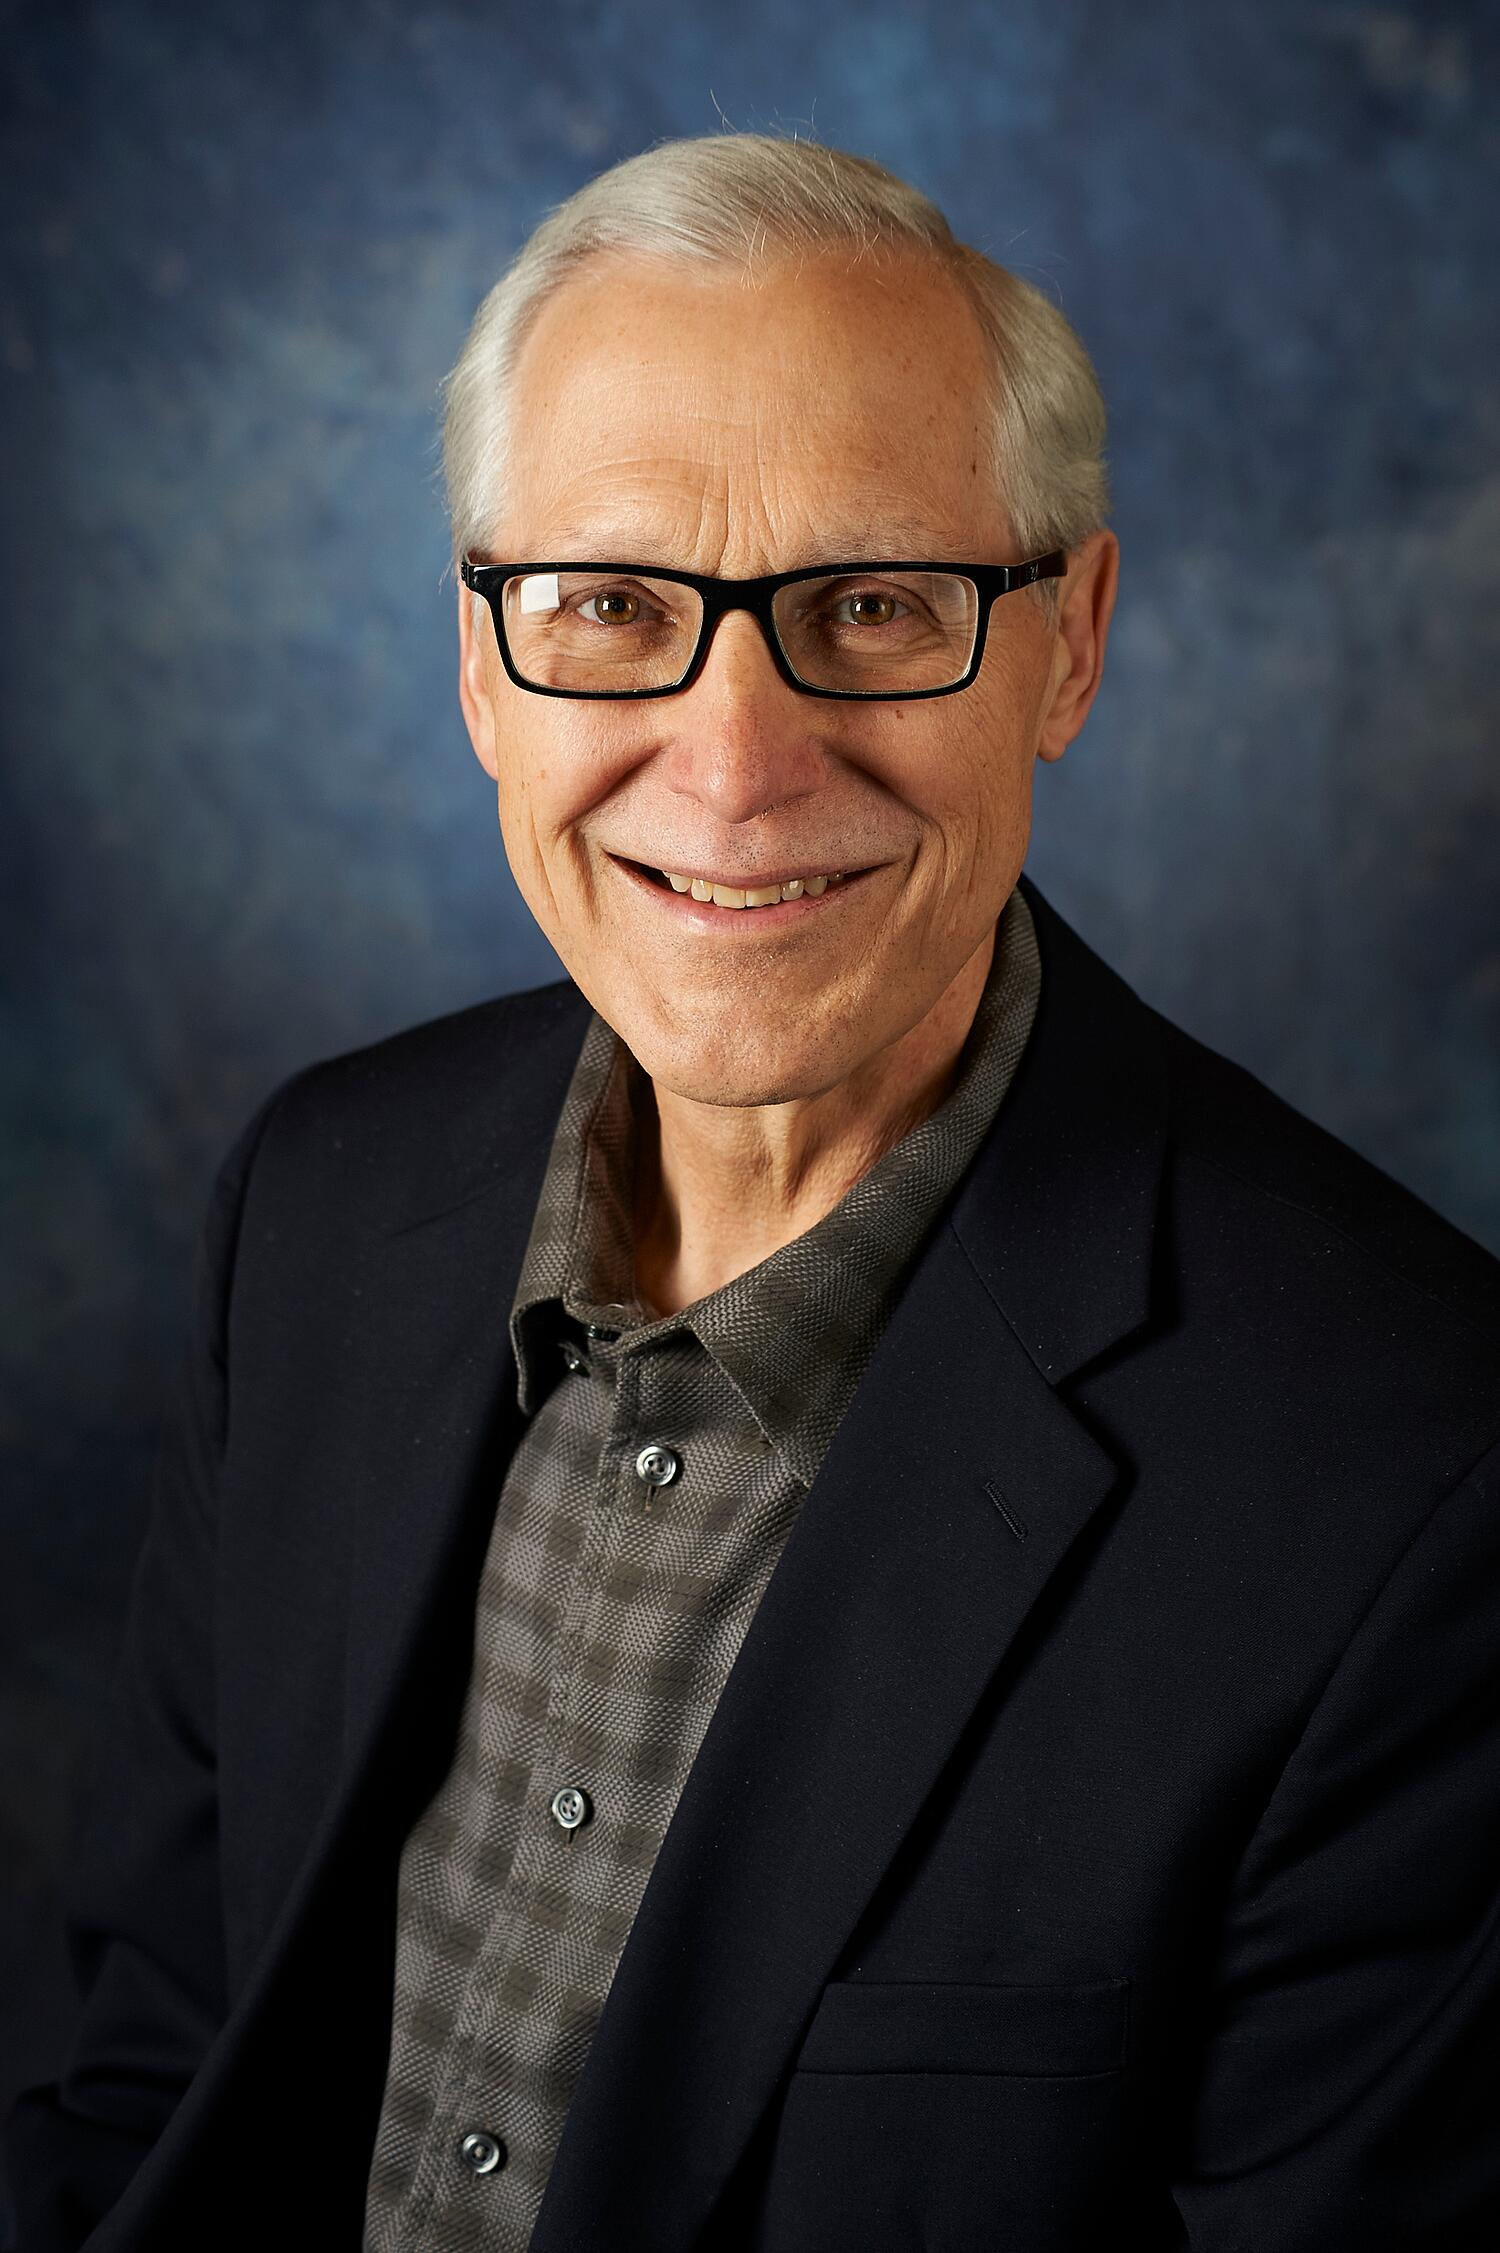 picture of Dr. Cramer, DC, Ph.D.